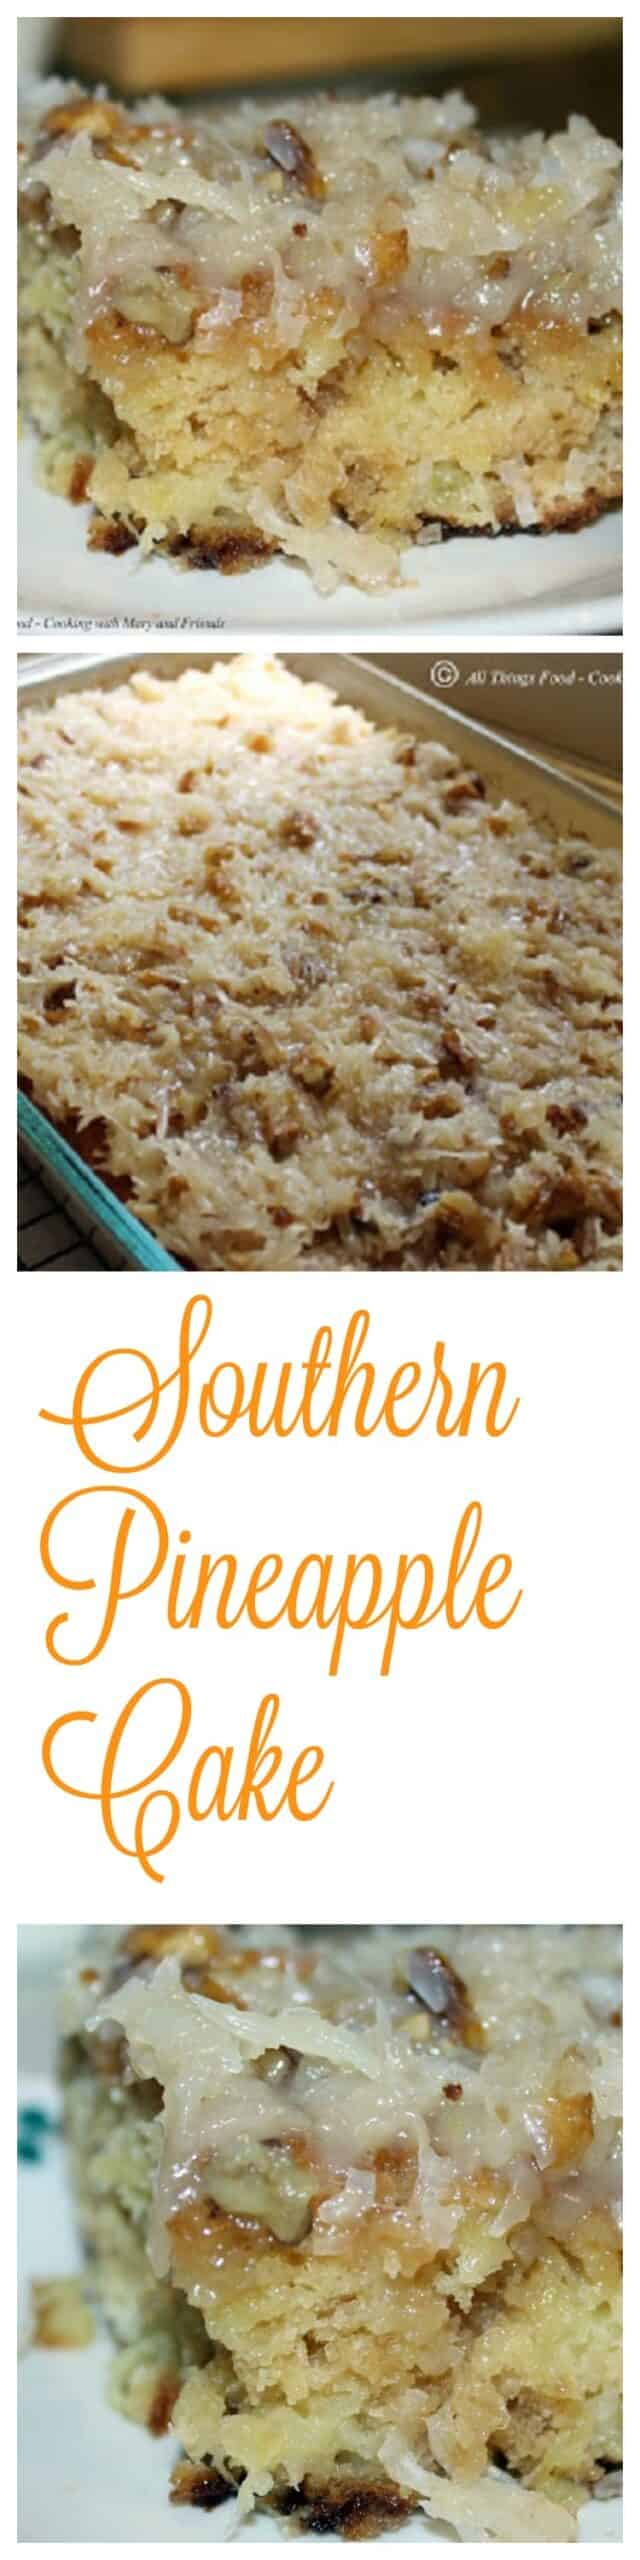 Southern Pineapple Cake is amazingly moist and delicious. It's so easy to make and even easier to eat! A simple, moist from scratch pineapple cake studded with pecans and coconut. via @Mooreorlesscook